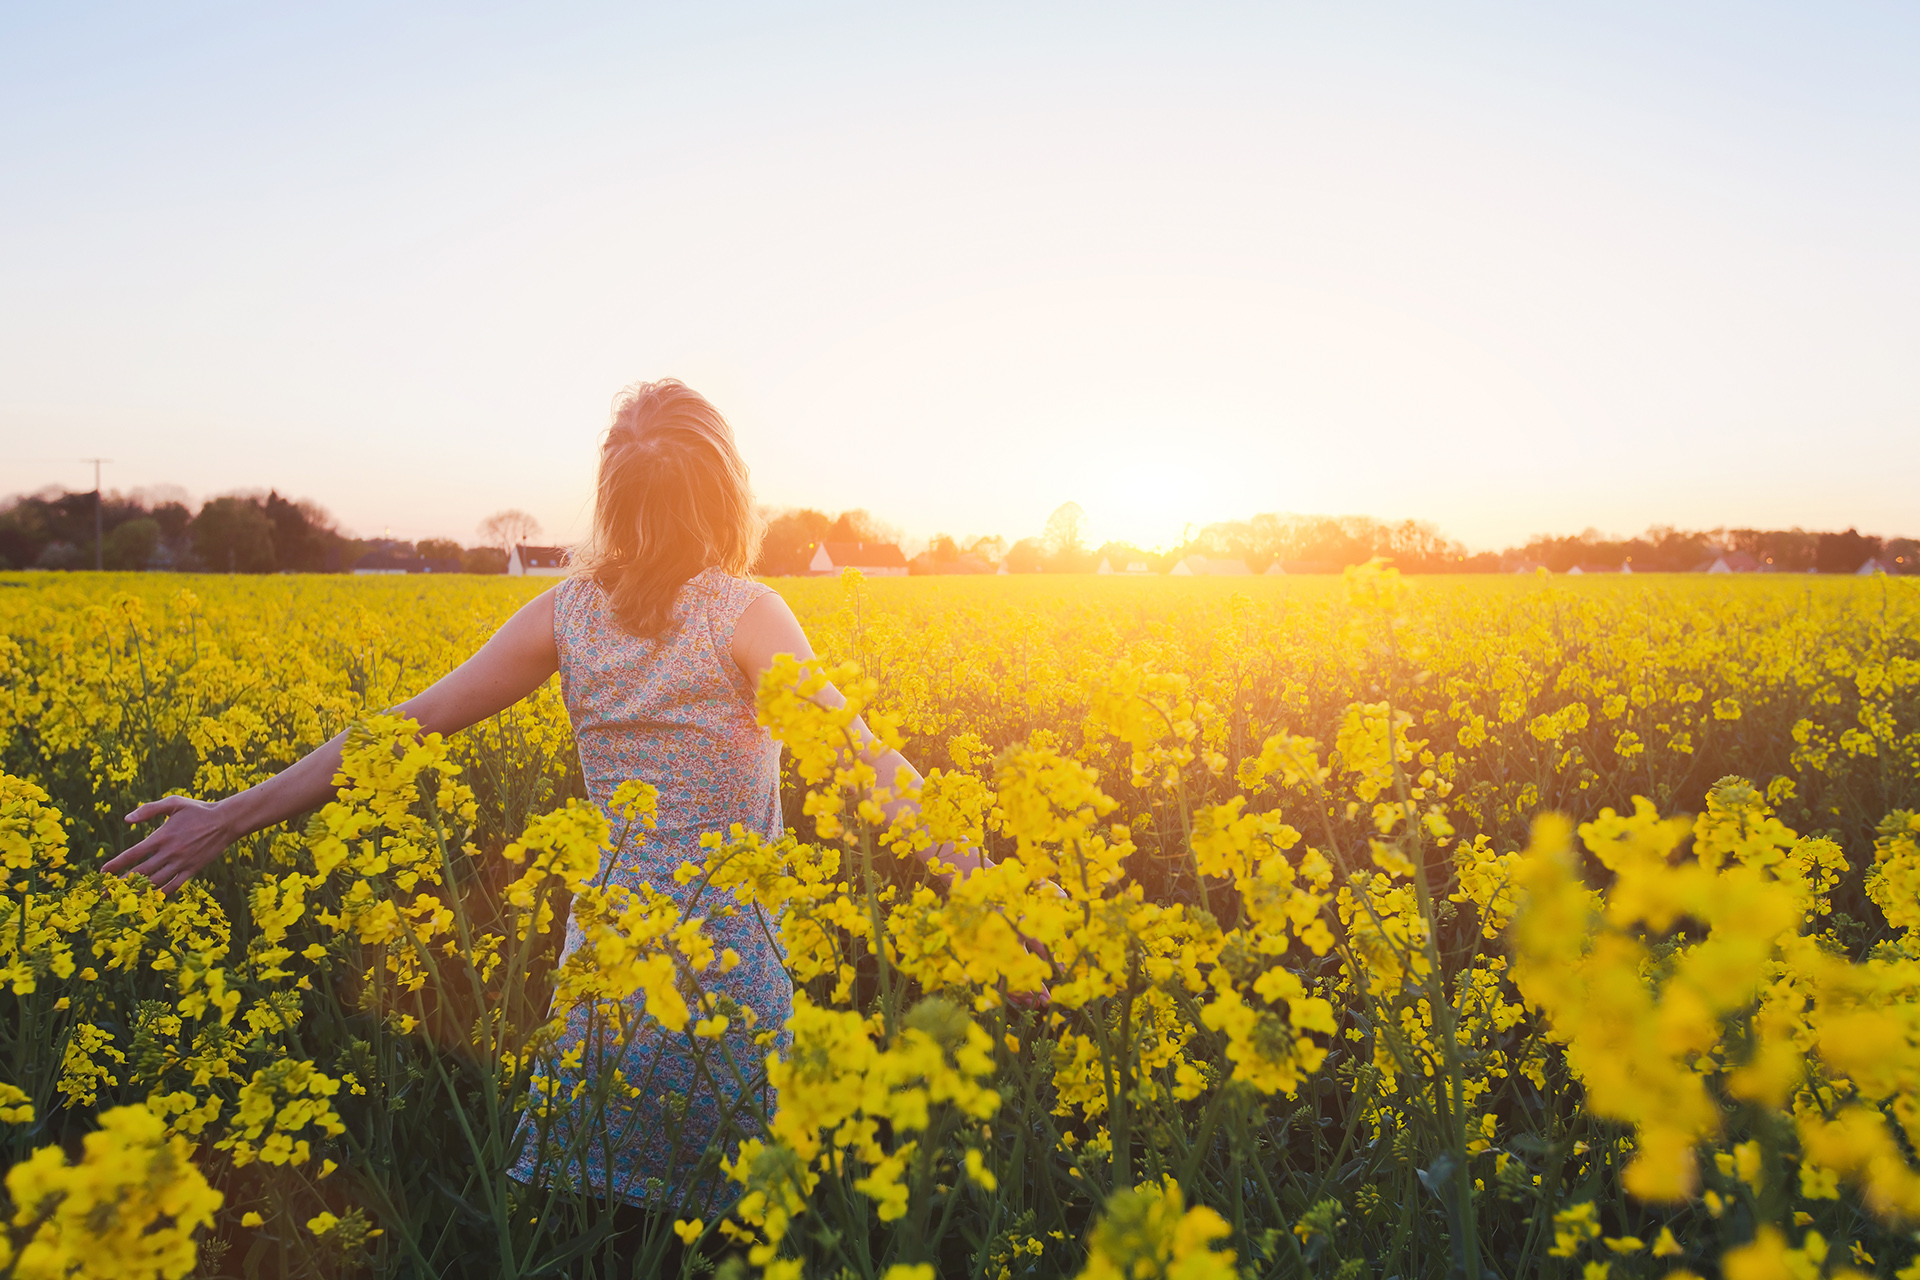 A young woman is walking through a large field full of tall yellow flowers at sunset.